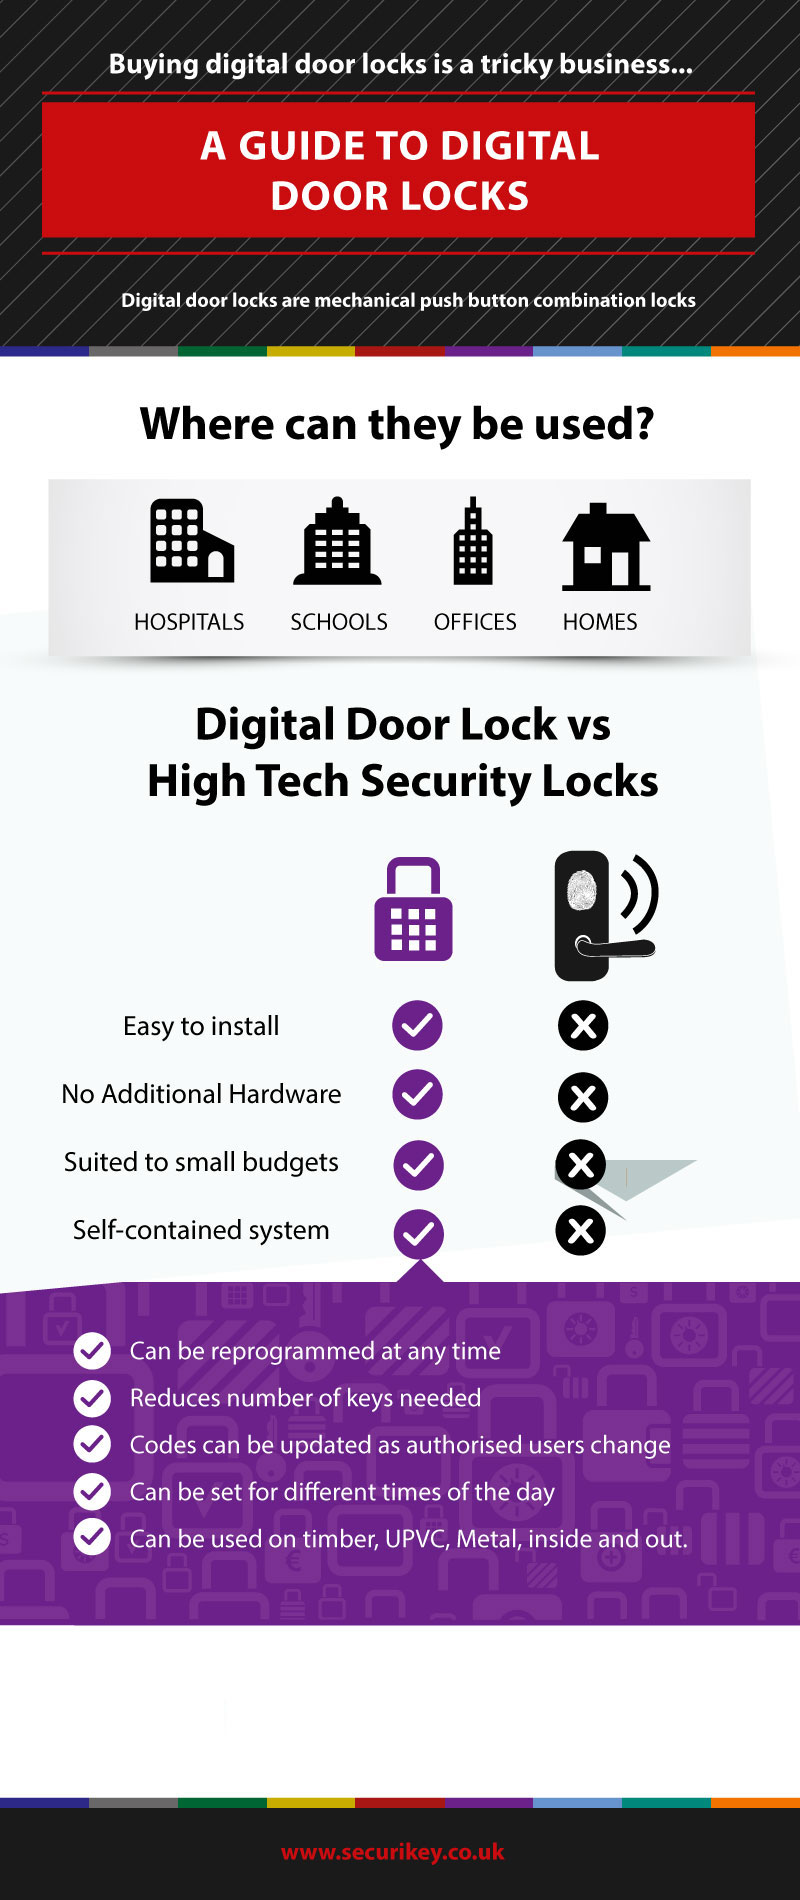 A Guide to Digital Door Locks Infographic